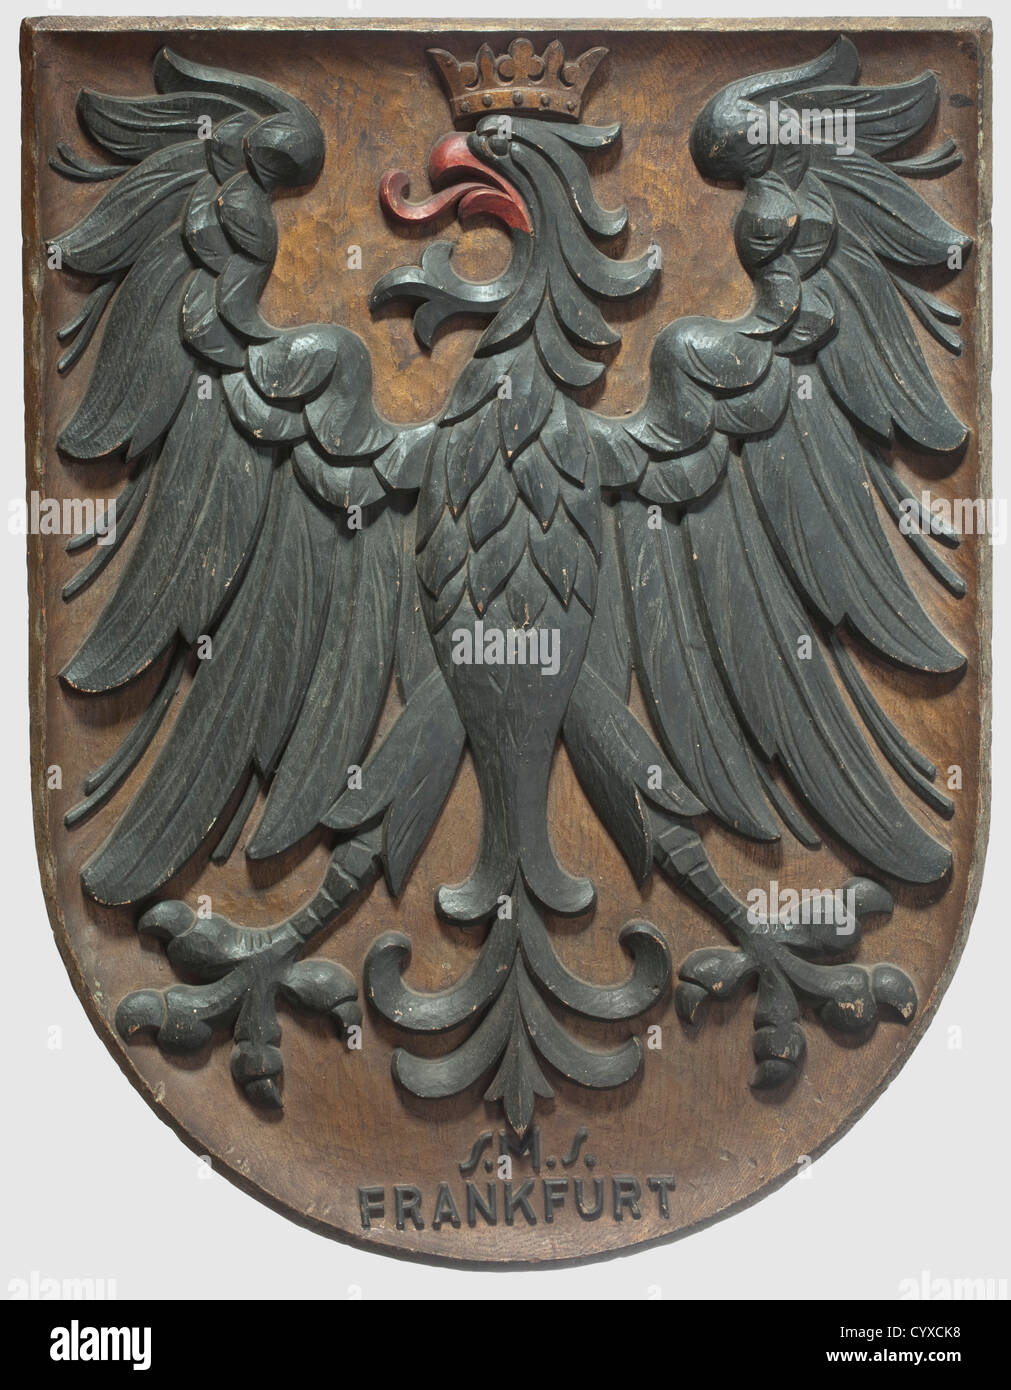 A German presentation shield from the S.M.S. Frankfurt, circa 1915 - 1918 Crowned eagle of the Frankfurt coat of - Stock Image